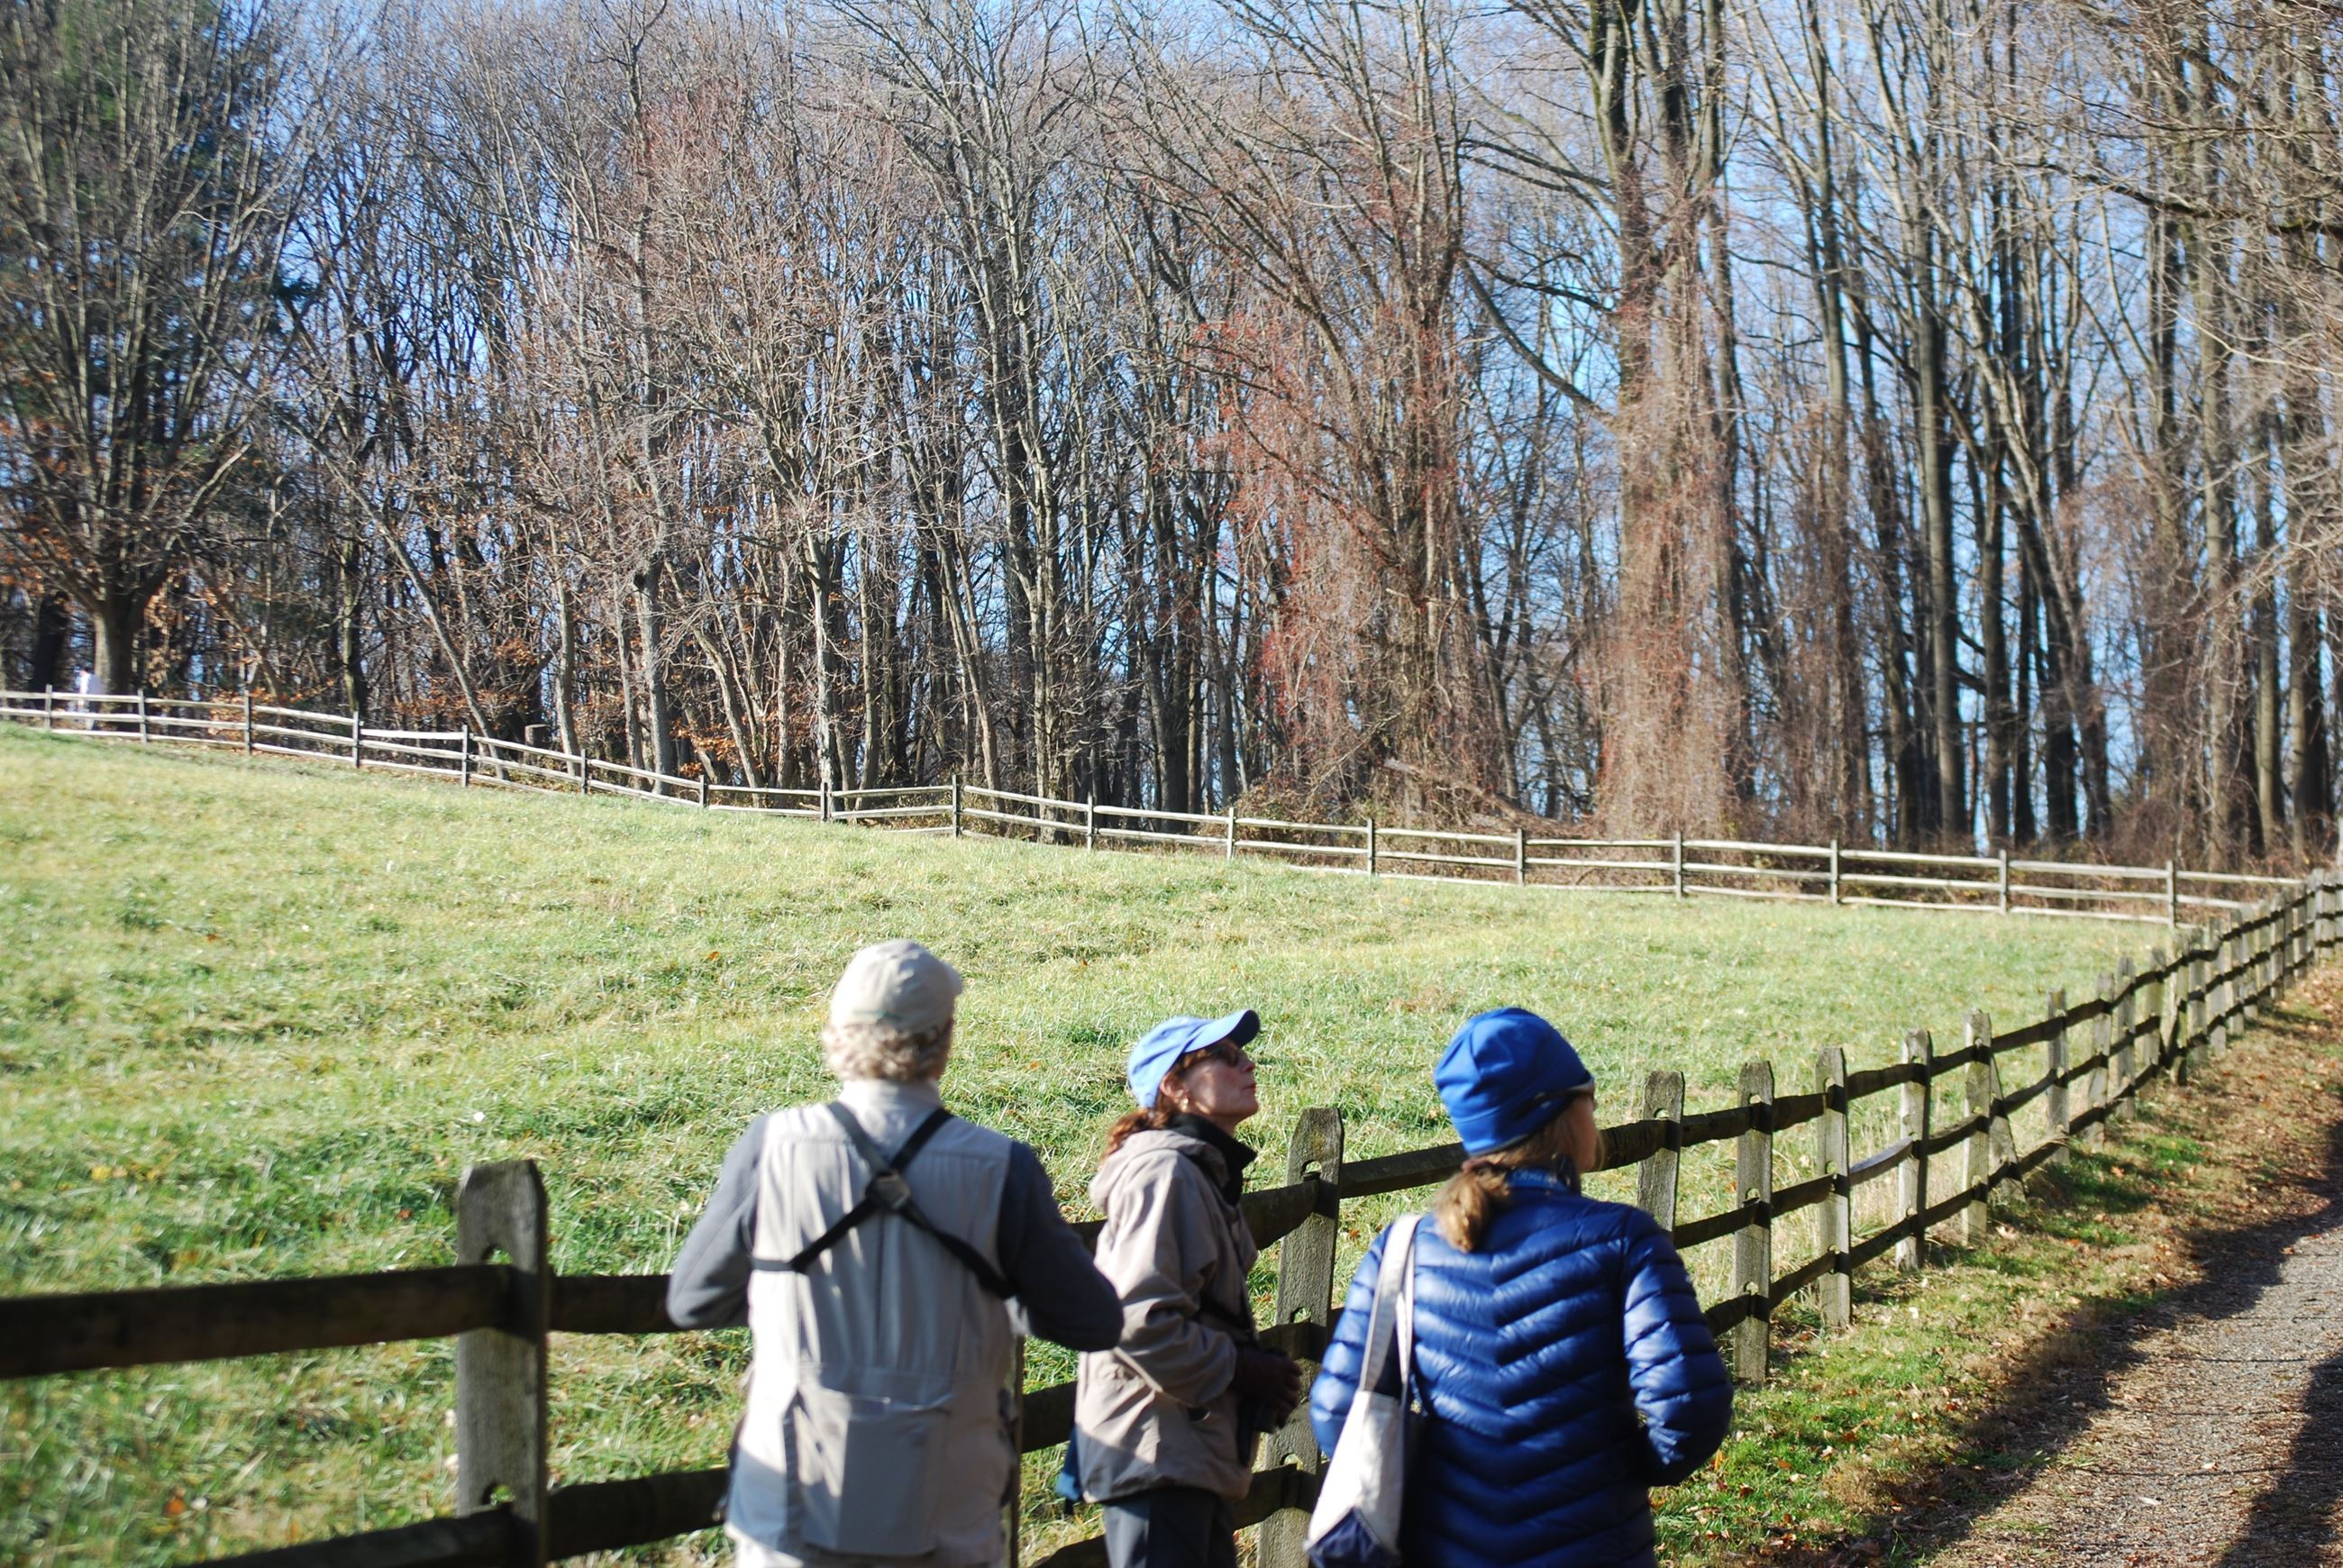 A late fall bird walk at Lorimer Park